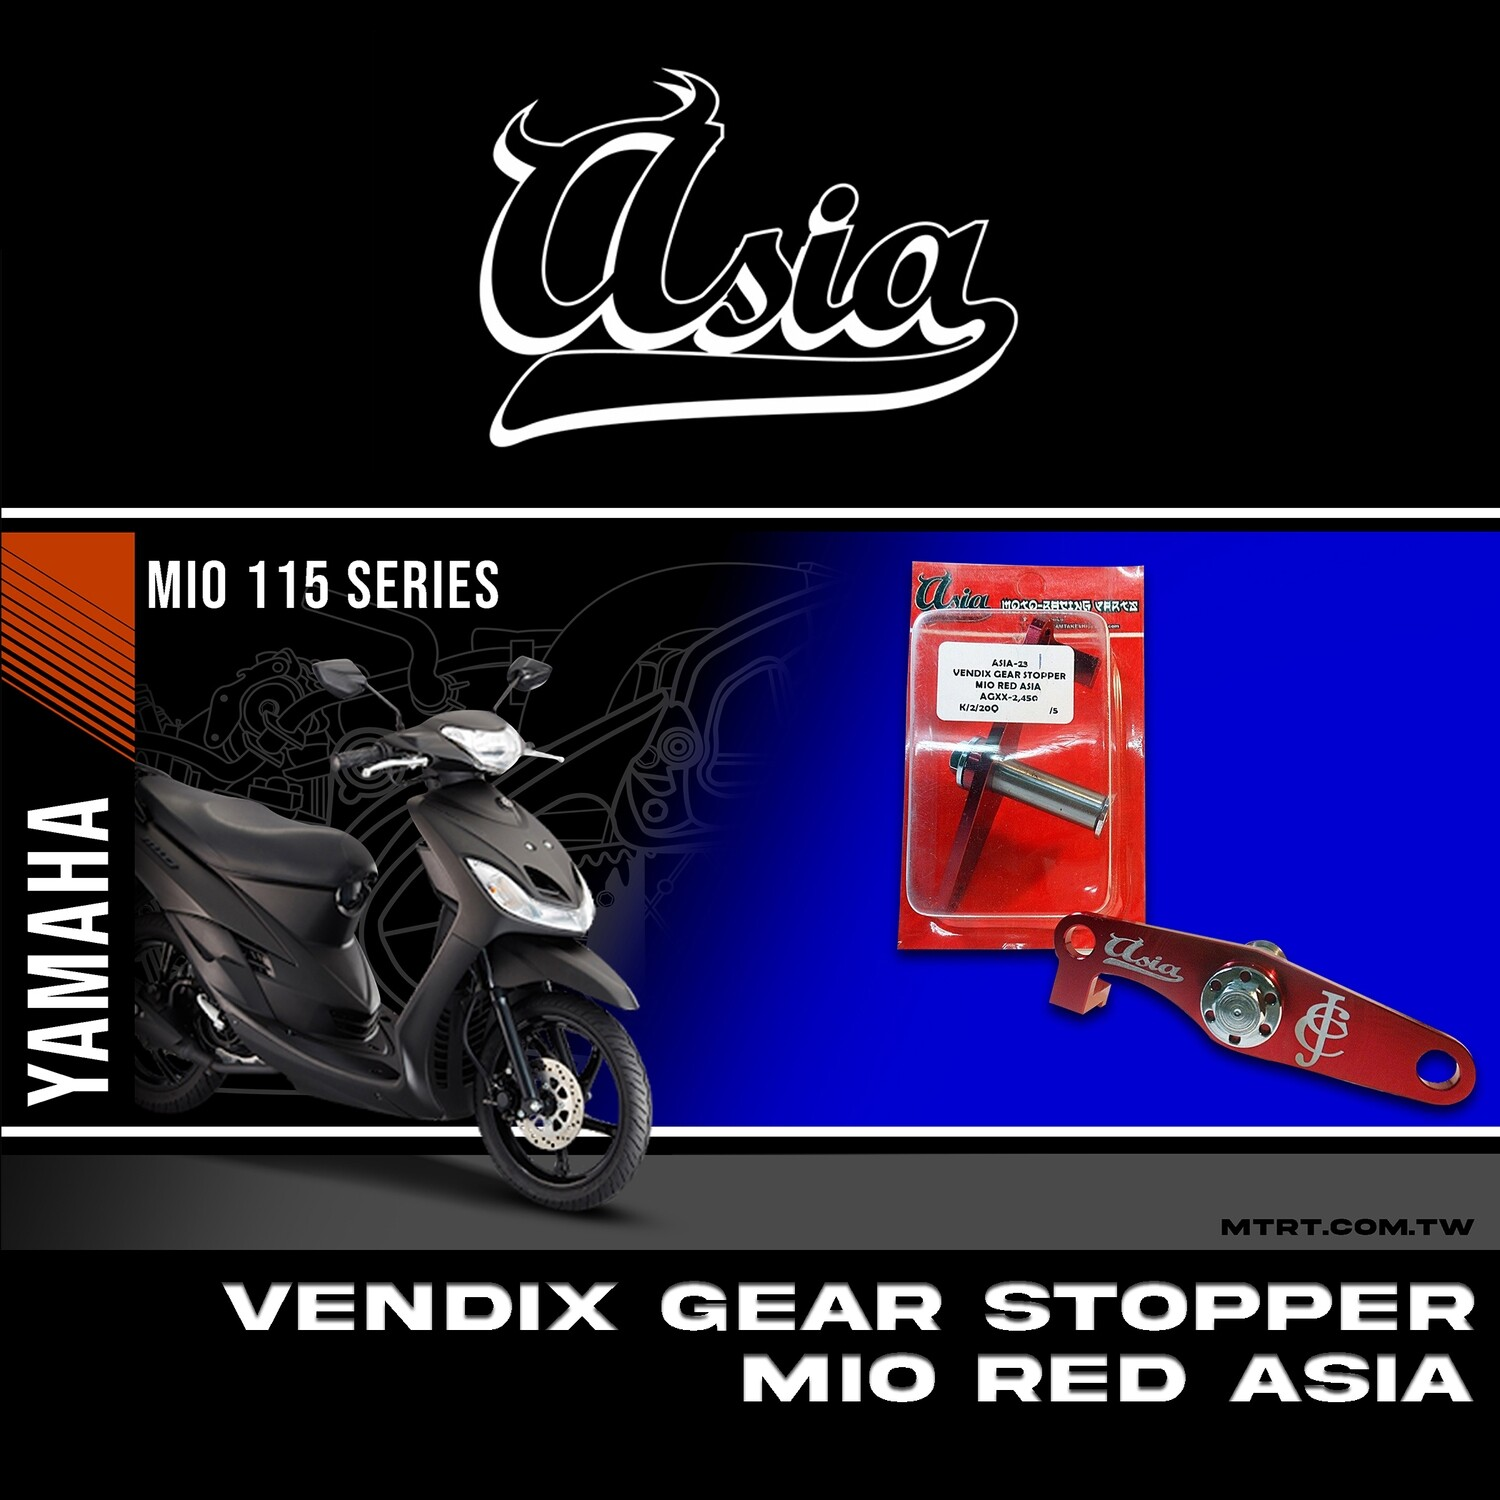 VENDIX GEAR STOPPER MIO RED ASIA